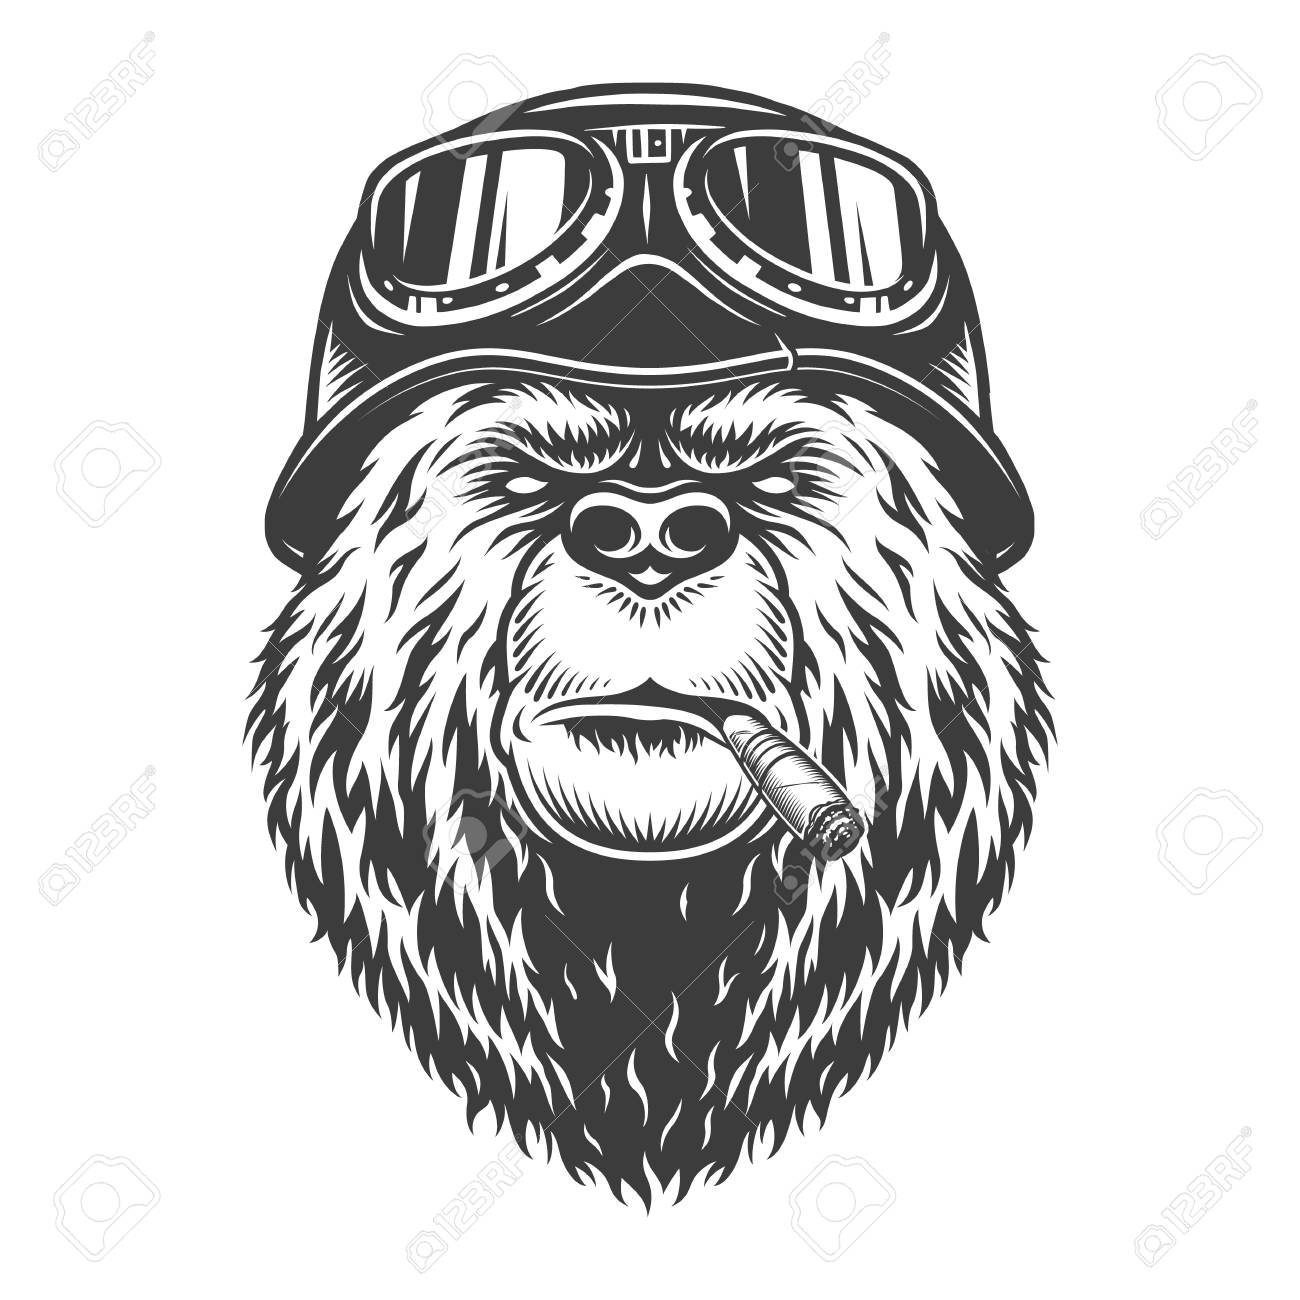 Vintage monochrome motorcyclist bear head smoking cigar and wearing motorcycle helmet and goggles isolated vector illustration - 113447839